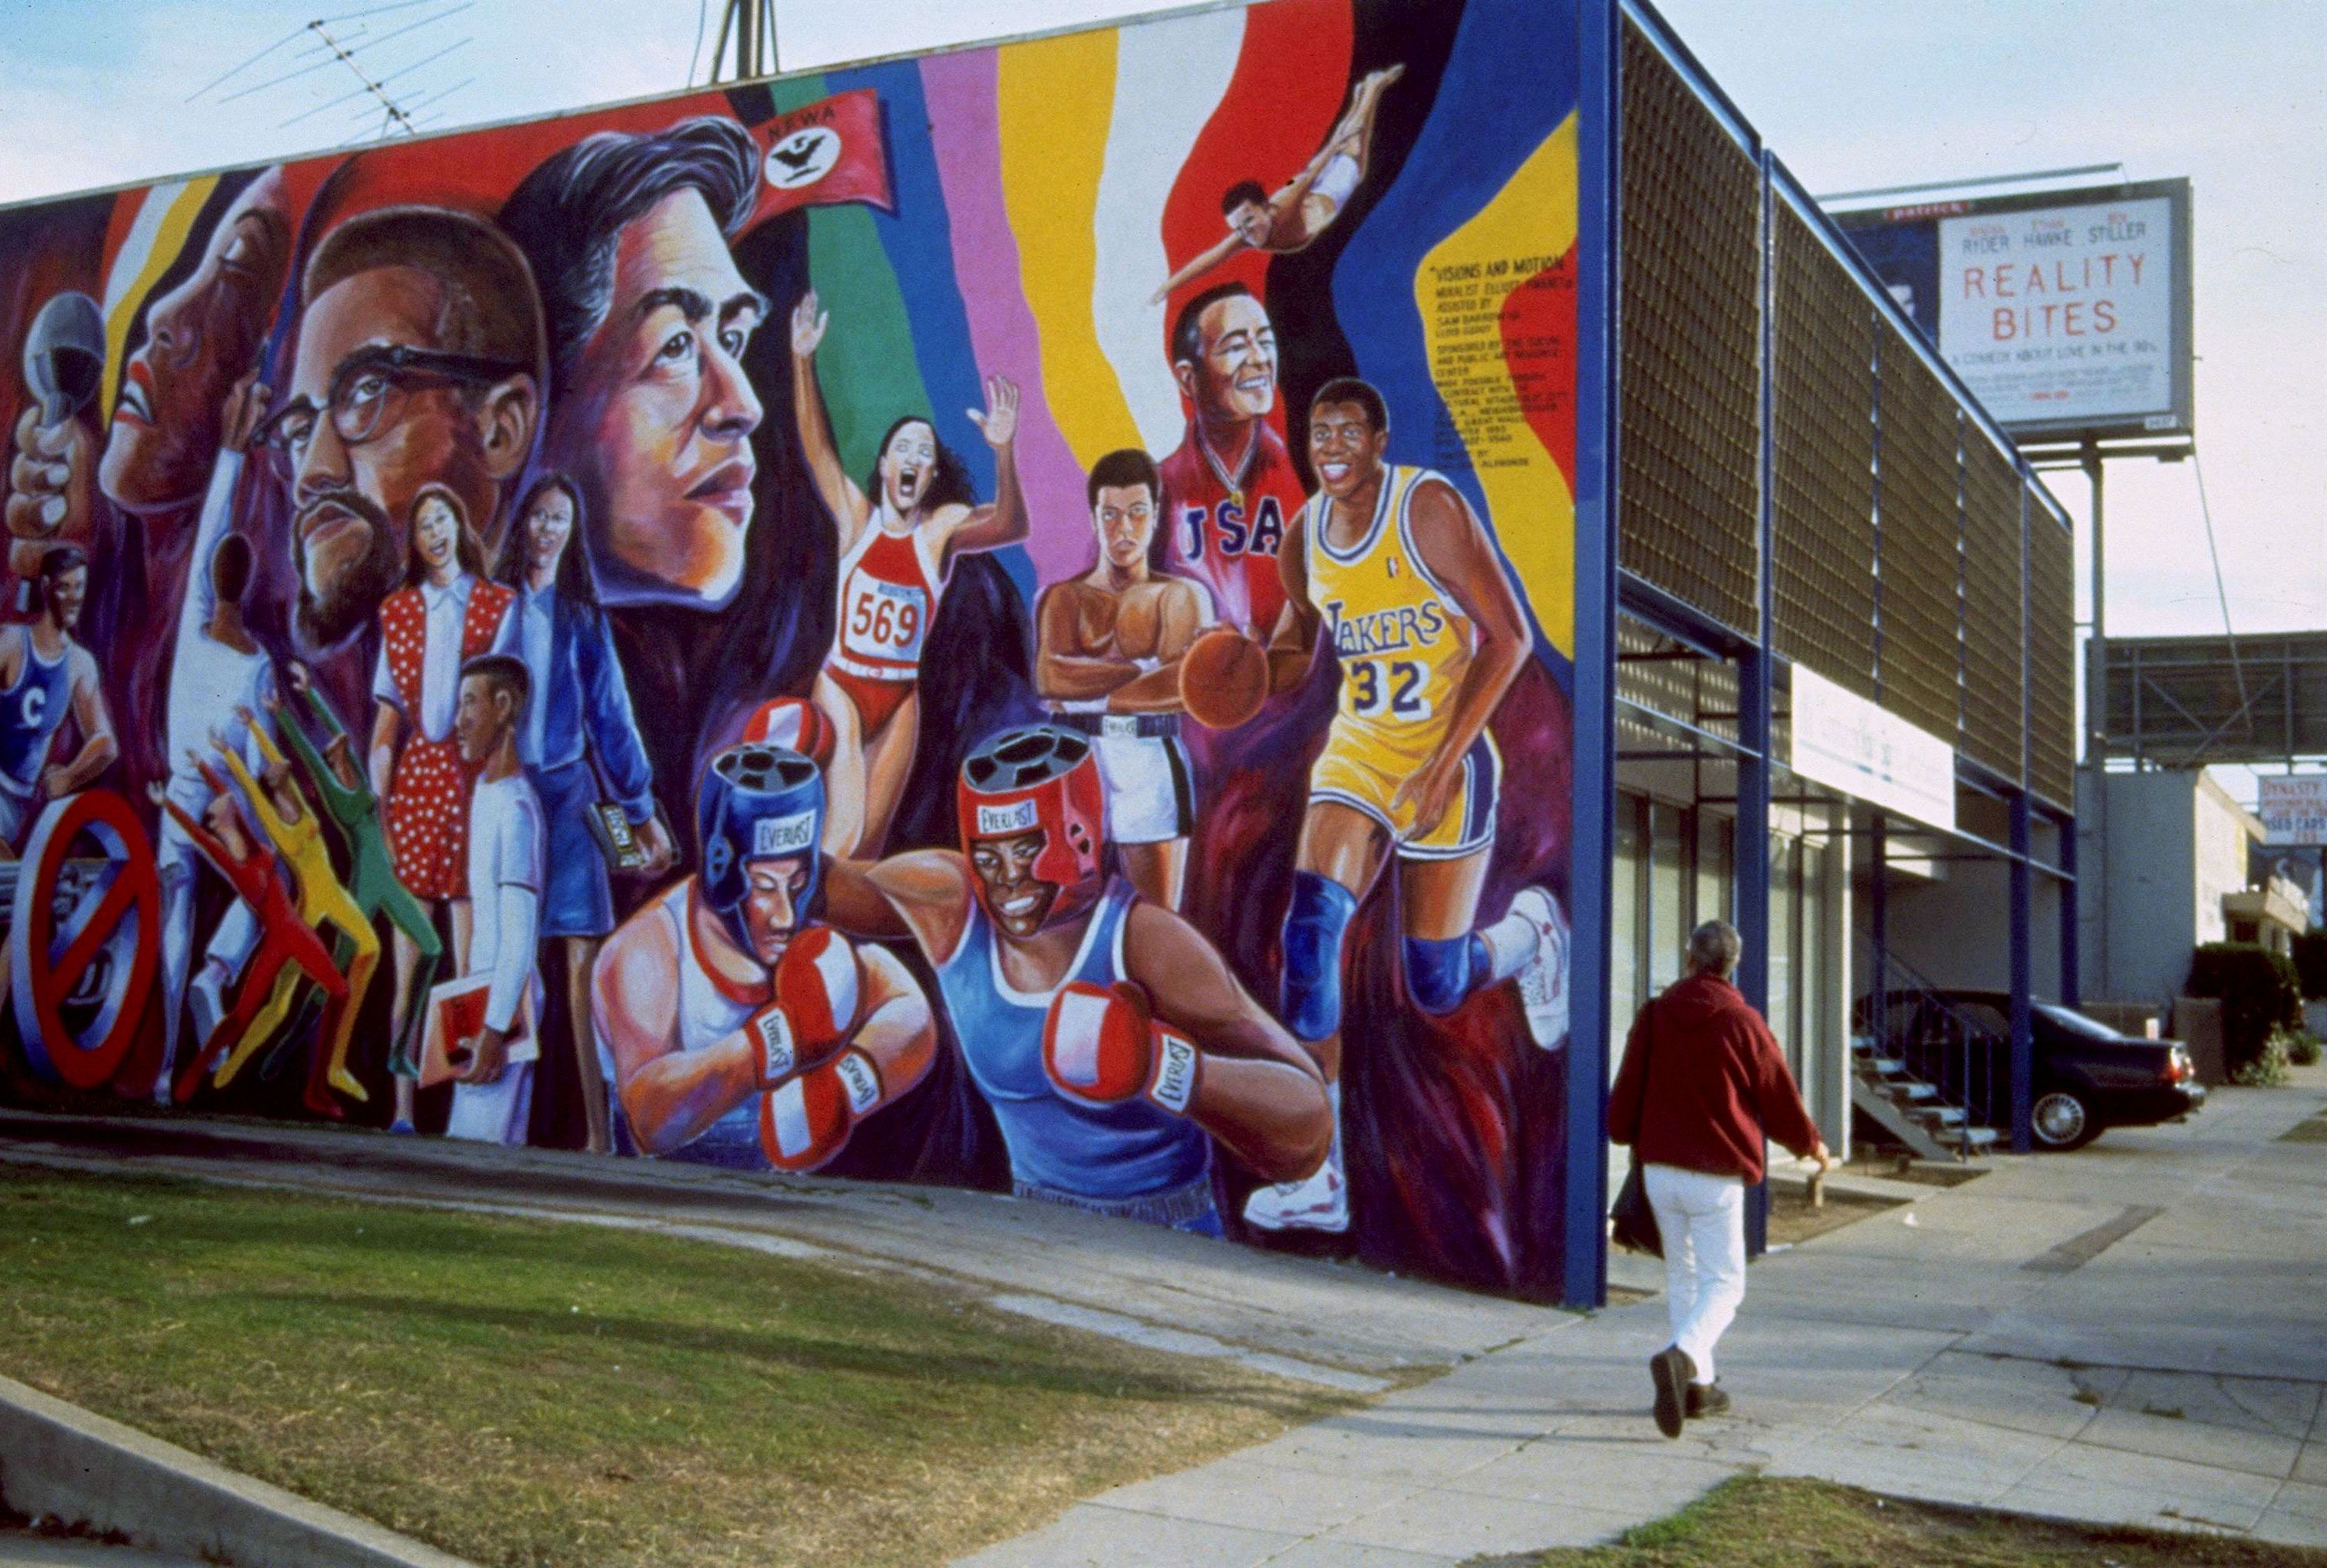 Community youth sports and arts foundation 488 crenshaw for Community mural